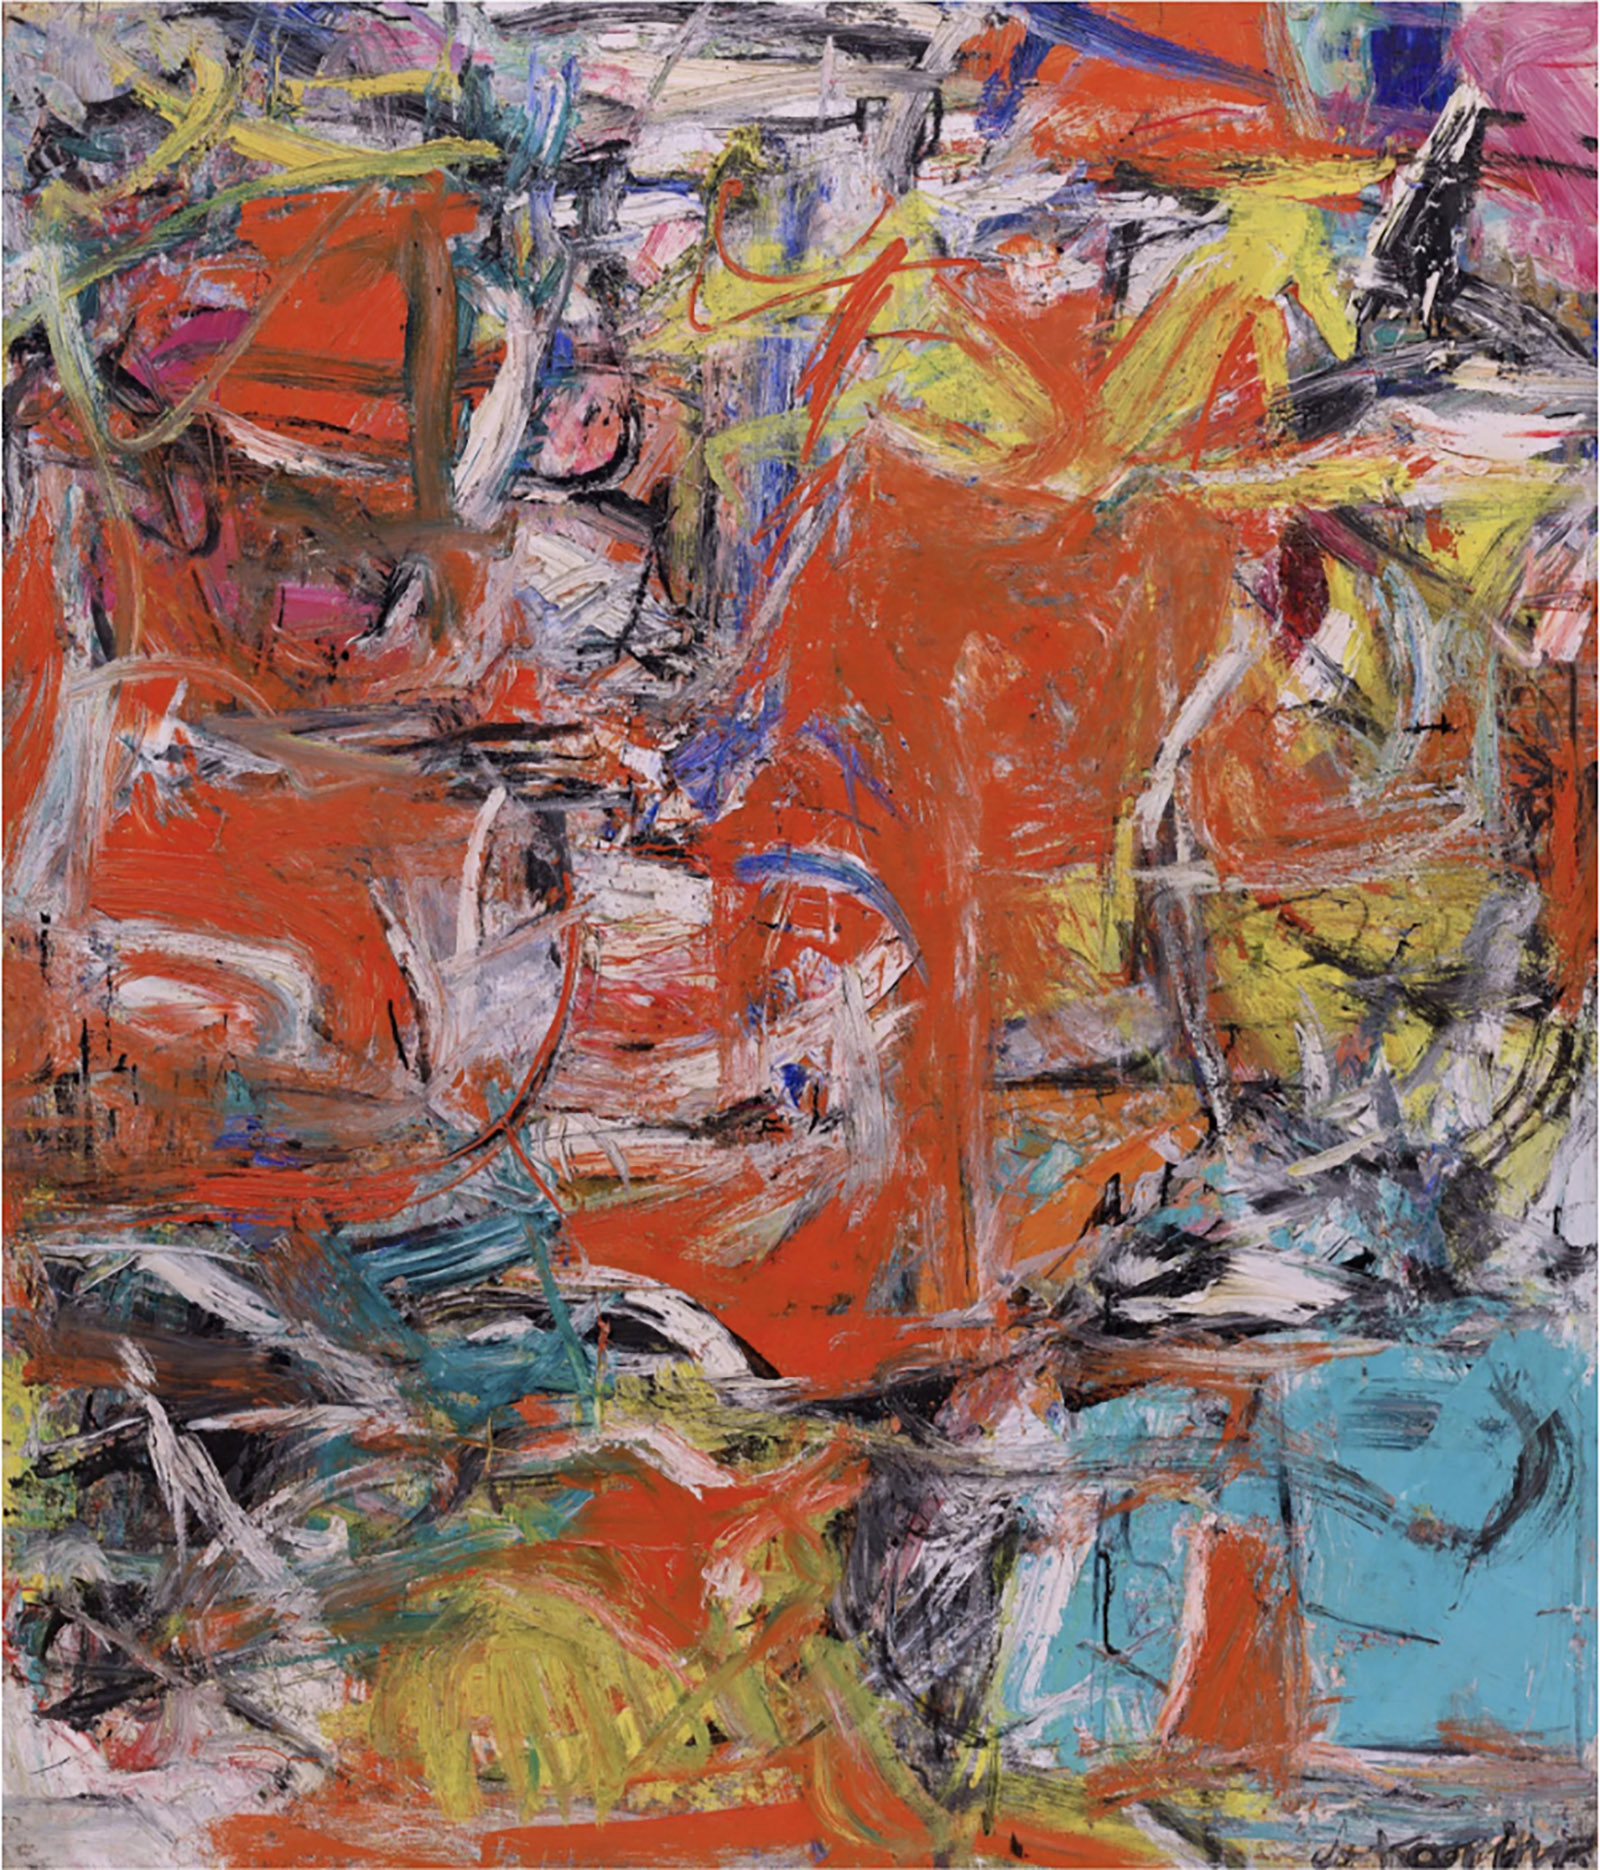 Willem de Kooning: Acrobat with a Paint Brush | by Stephen